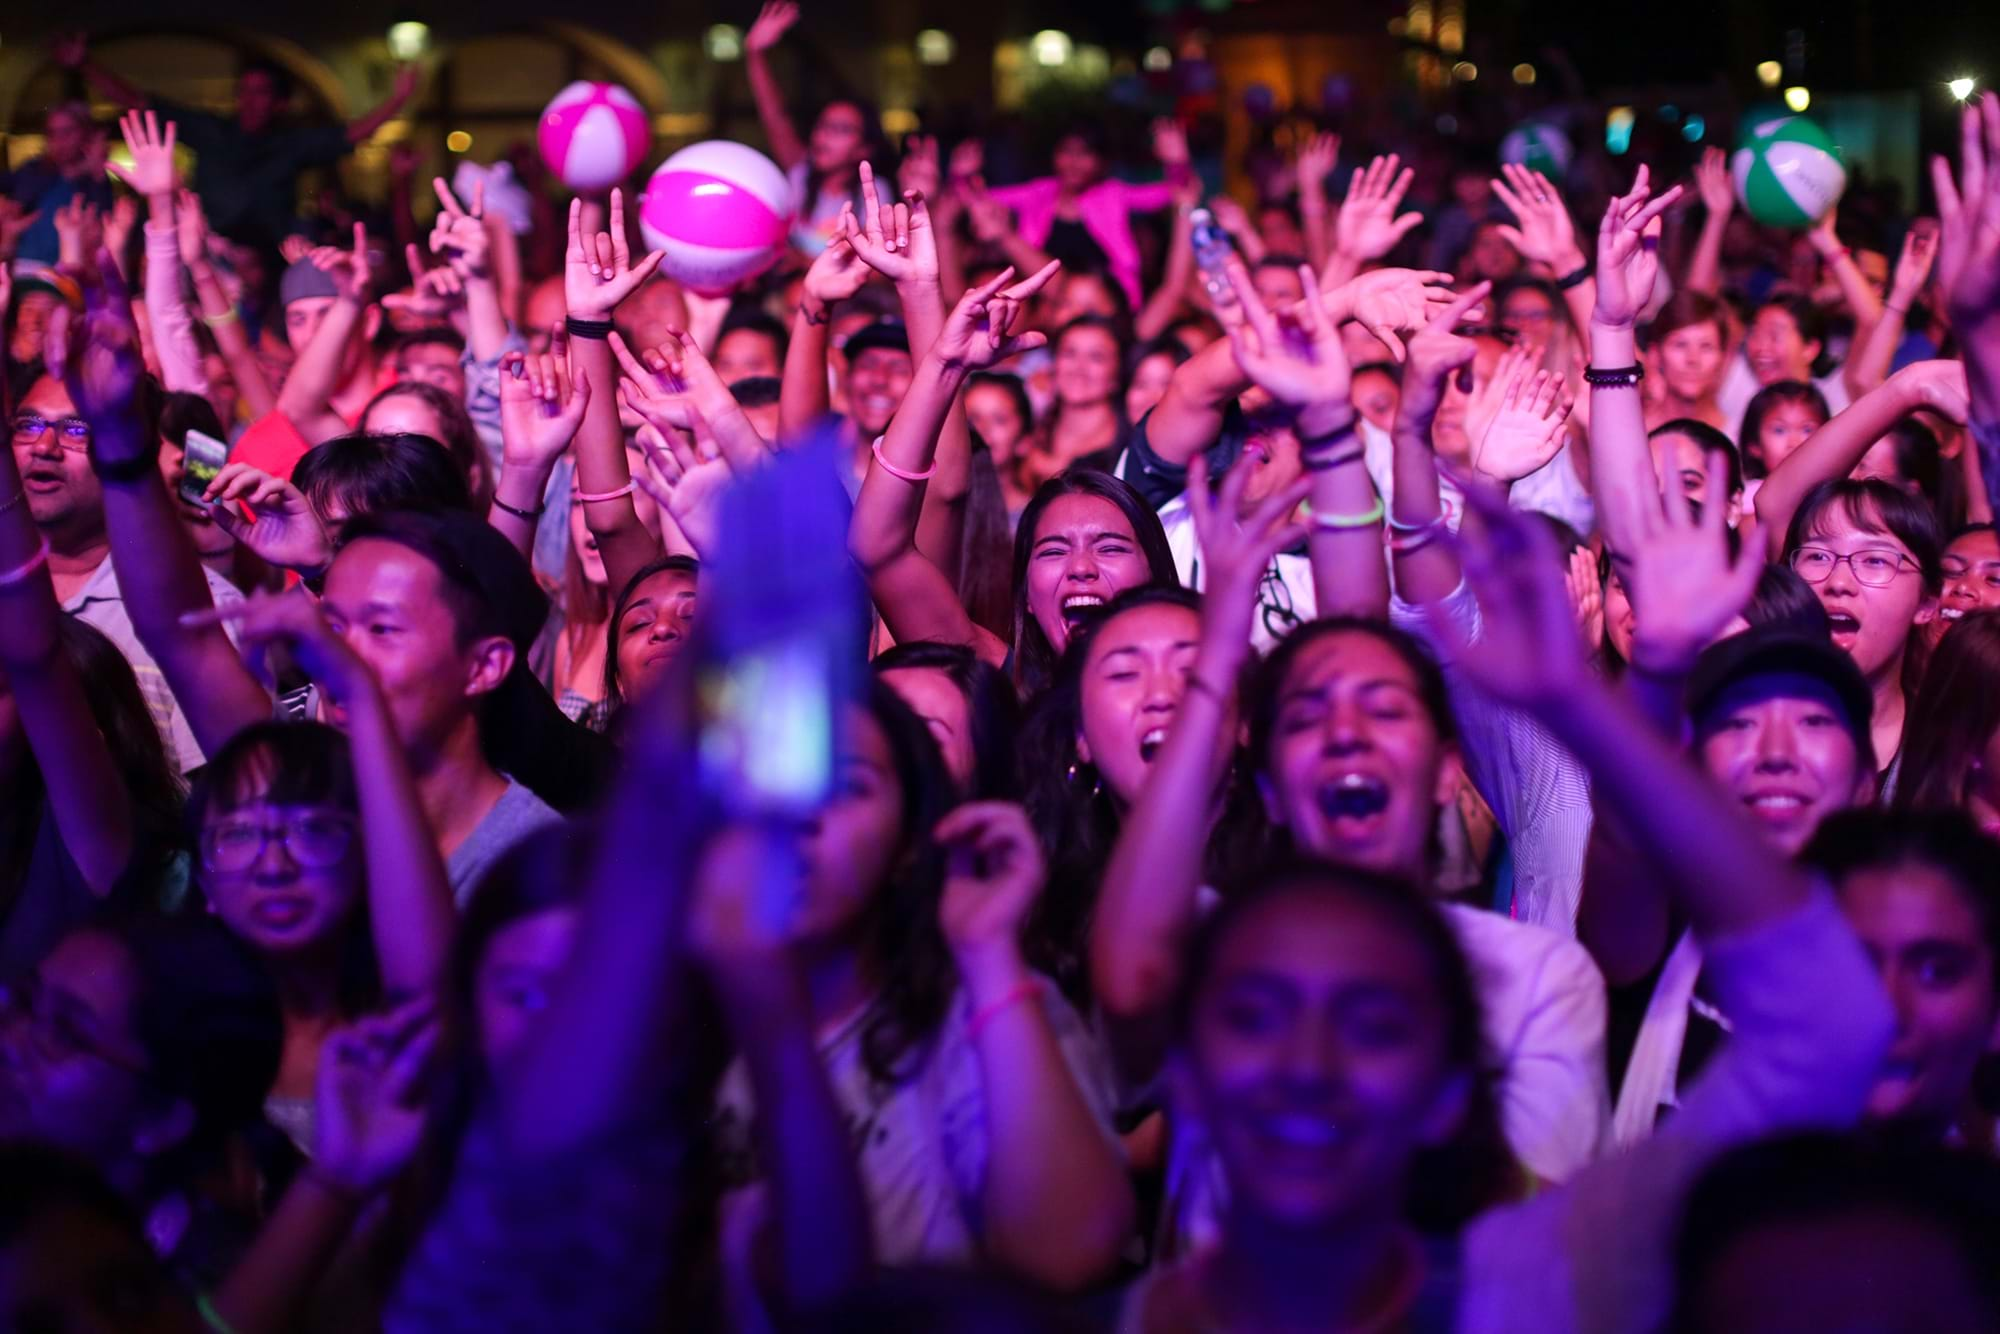 Crowd cheering during an event at Irvine Spectrum Center